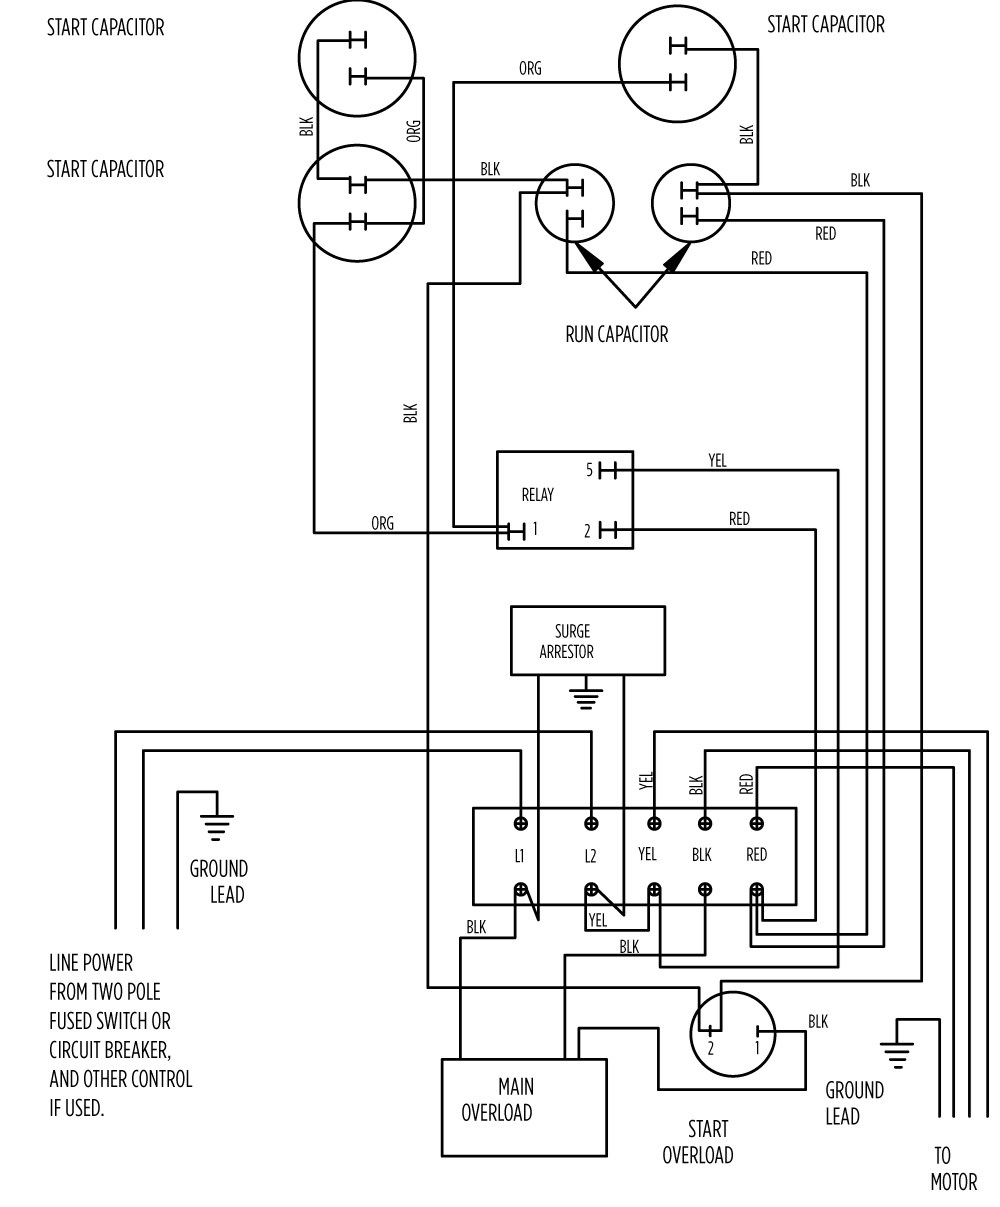 medium resolution of 10 hp baldor motor wiring diagram just wiring diagram 10 hp motor wiring diagram wiring diagram